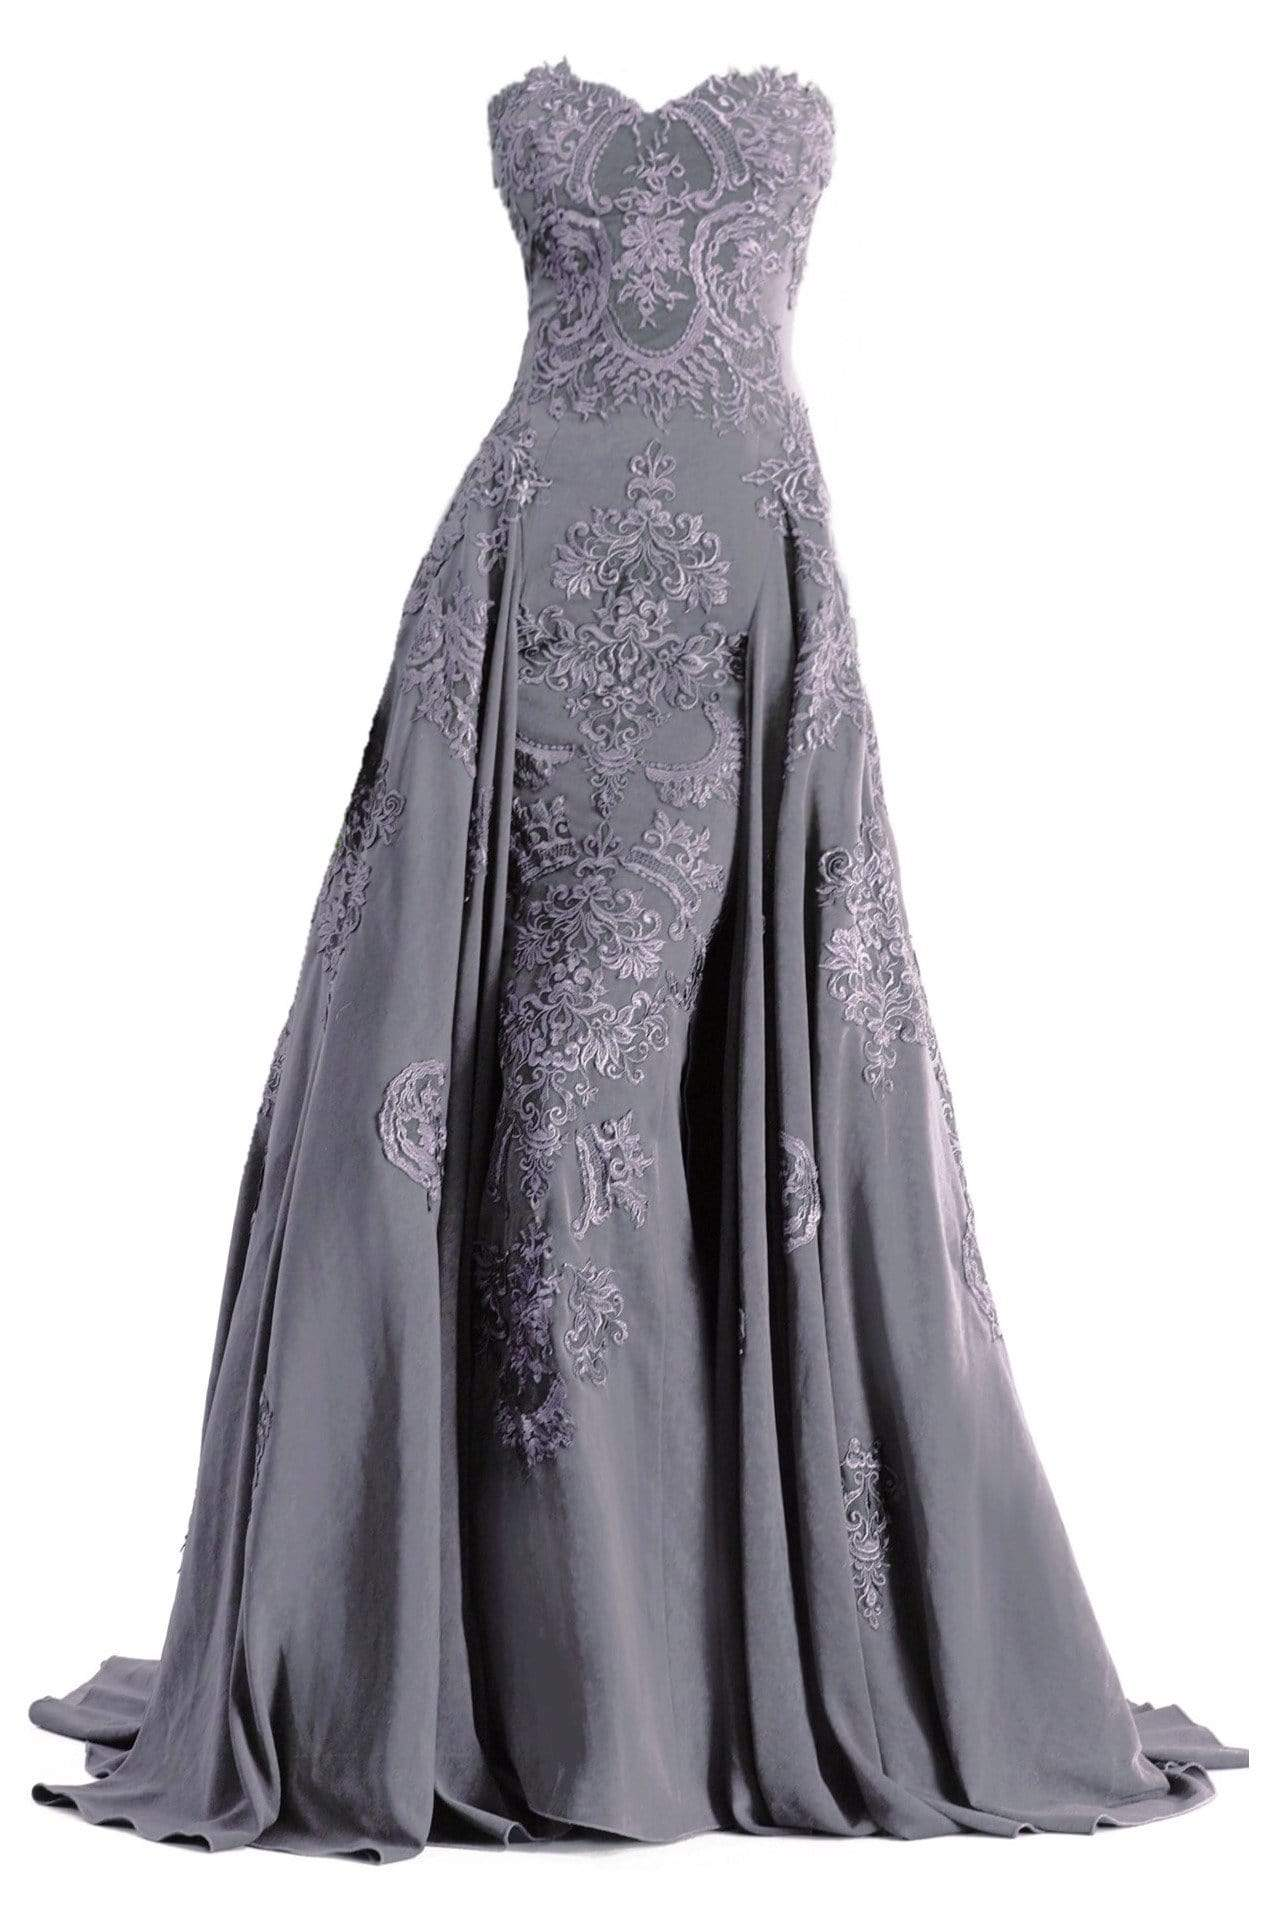 Janique - Embroidered Straight Neck A-line Gown W1691 from Janique